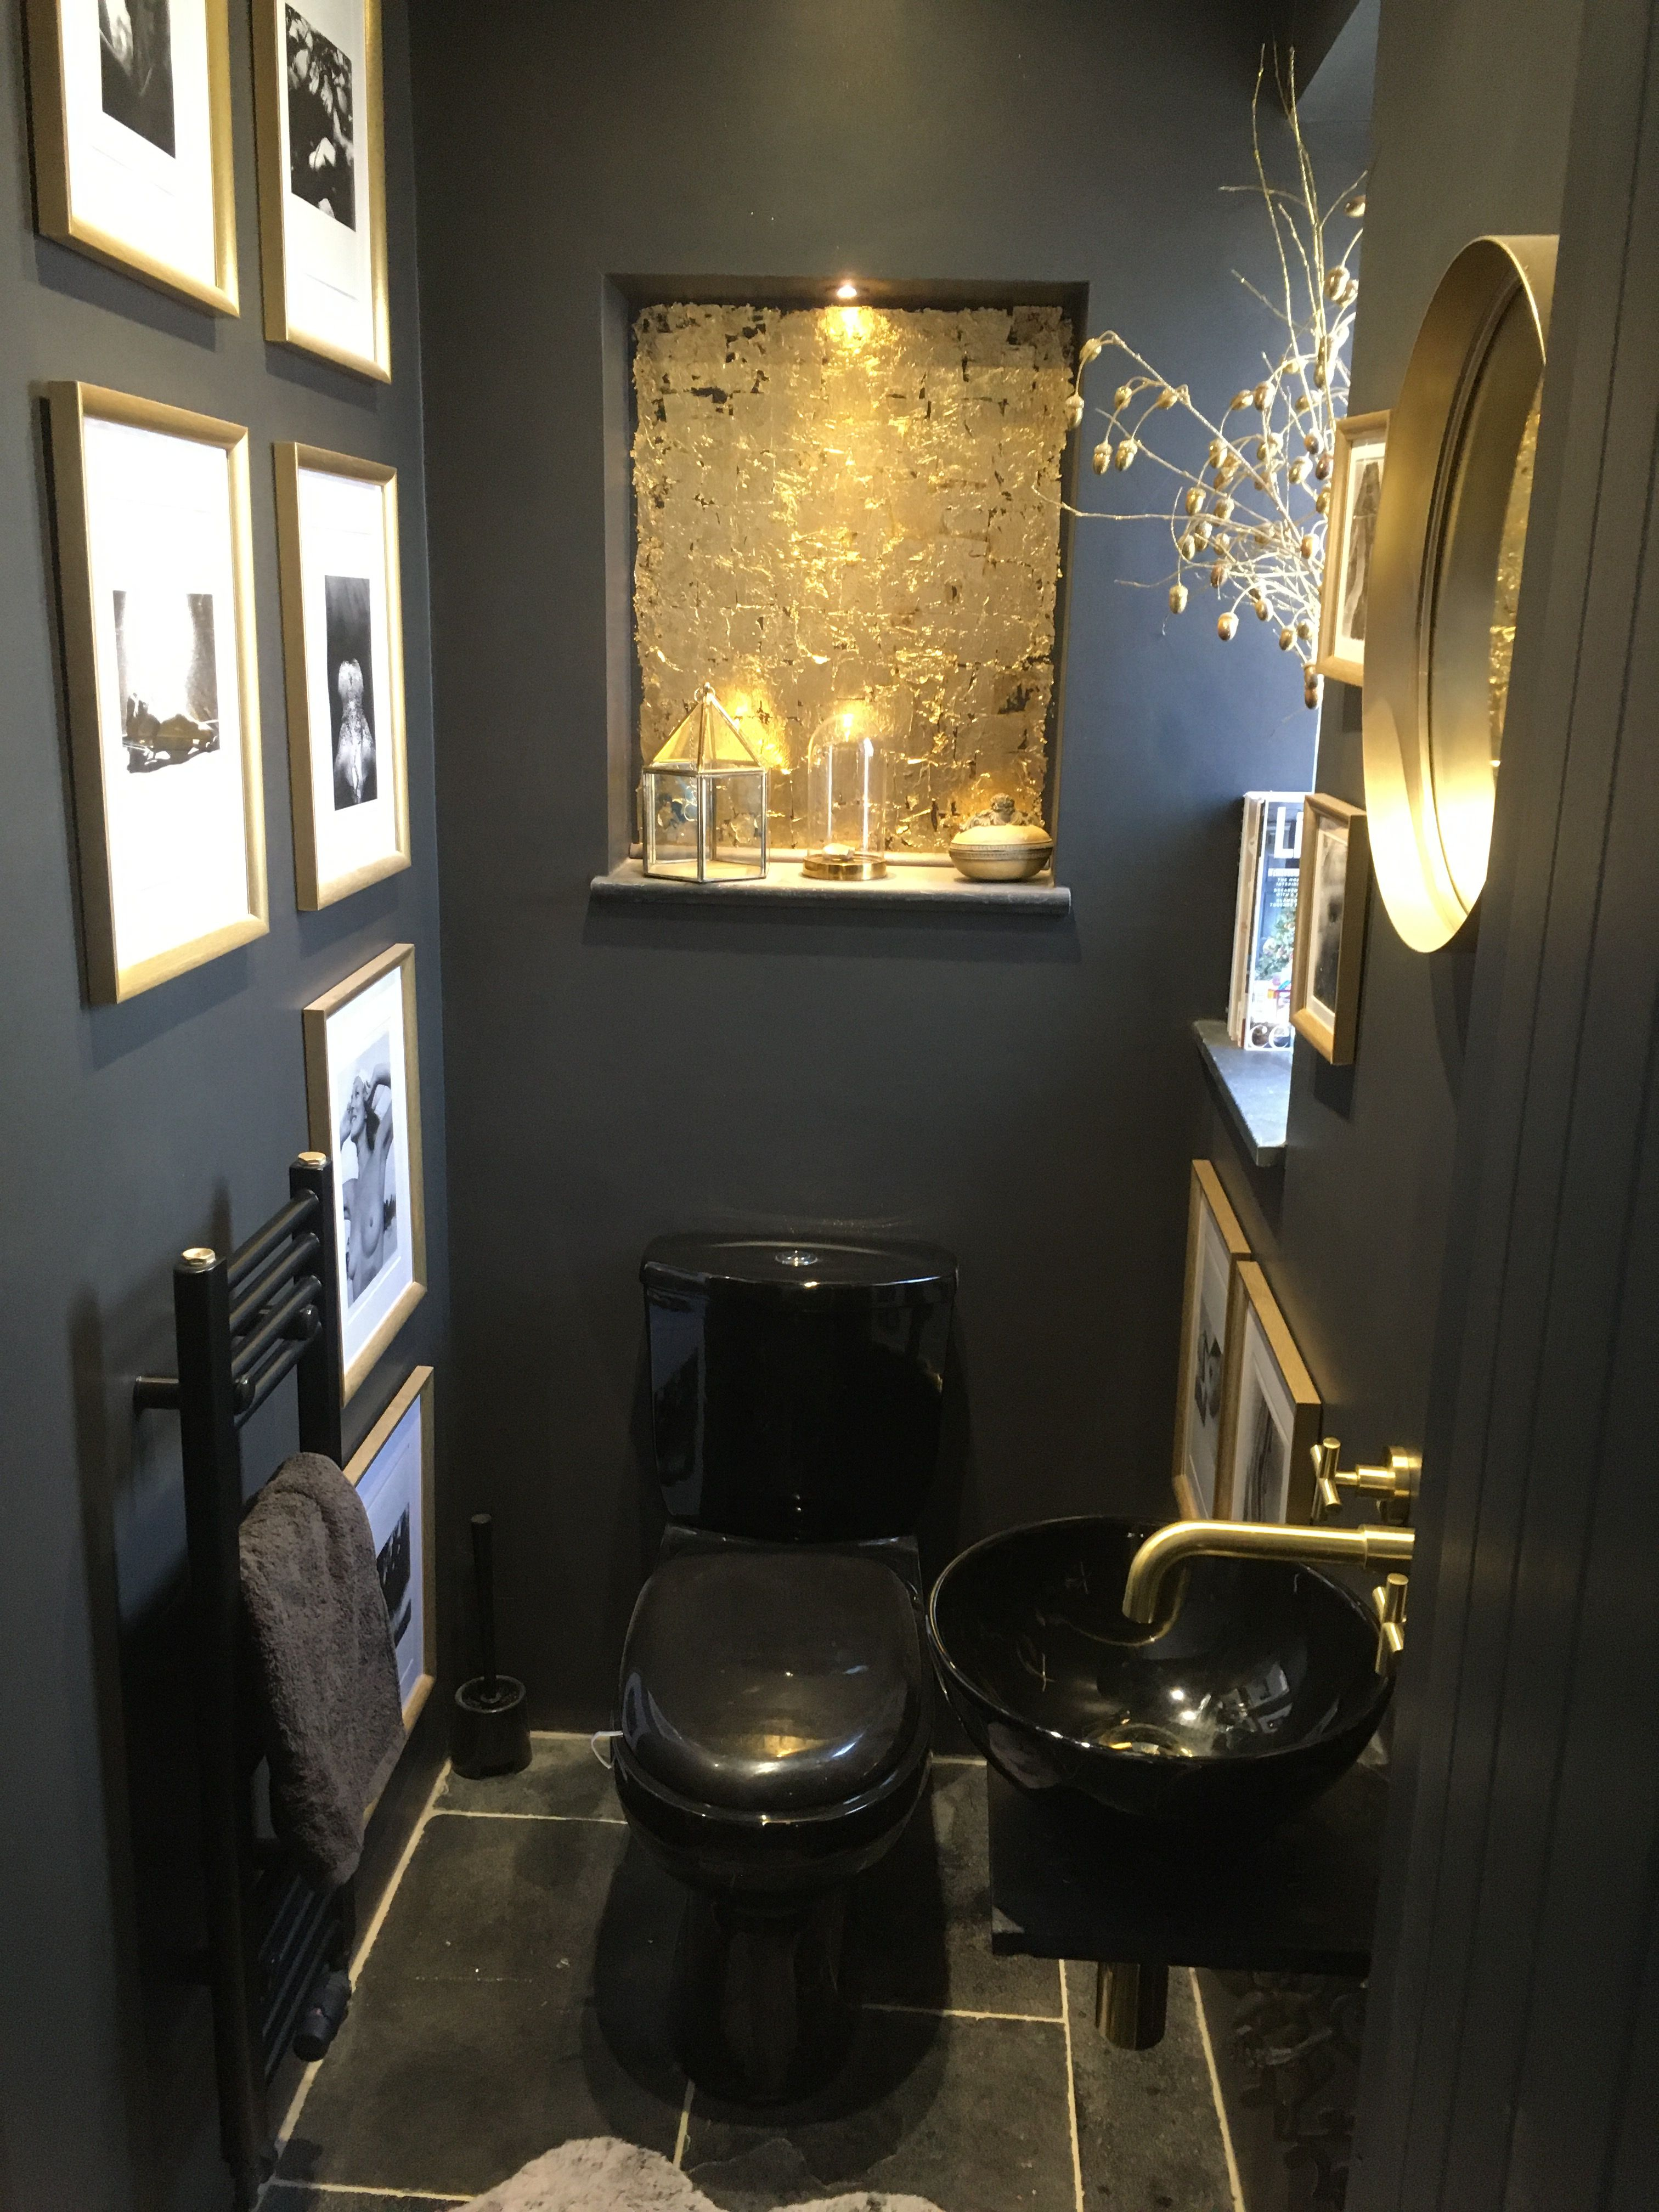 25 Stunning Bathrooms With Gold Hardware The Happy Housie Stunning Bathrooms Gold Bathroom Fixtures Home Decor